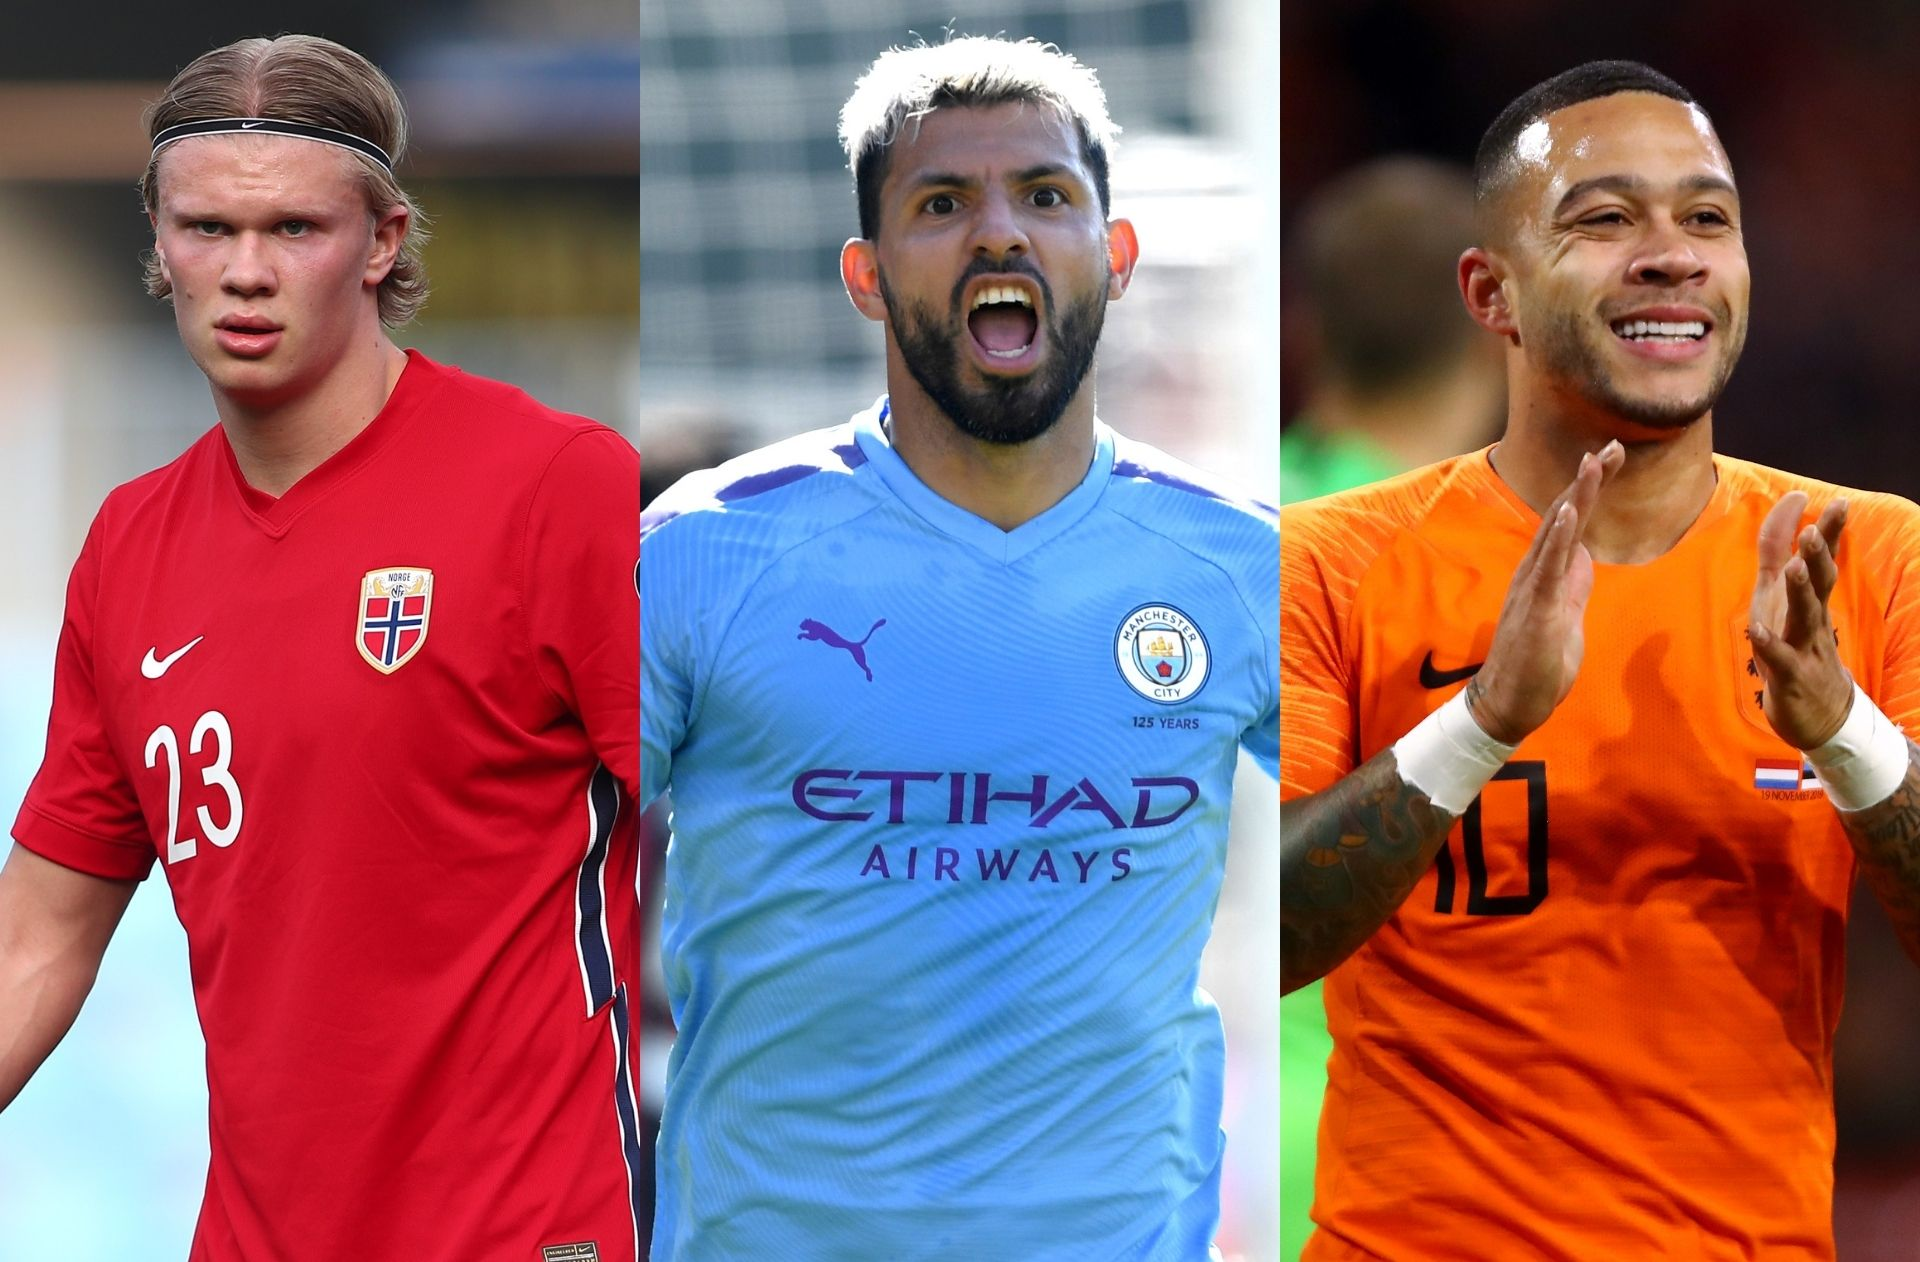 Friday's transfer rumors - The favorites to sign Aguero revealed